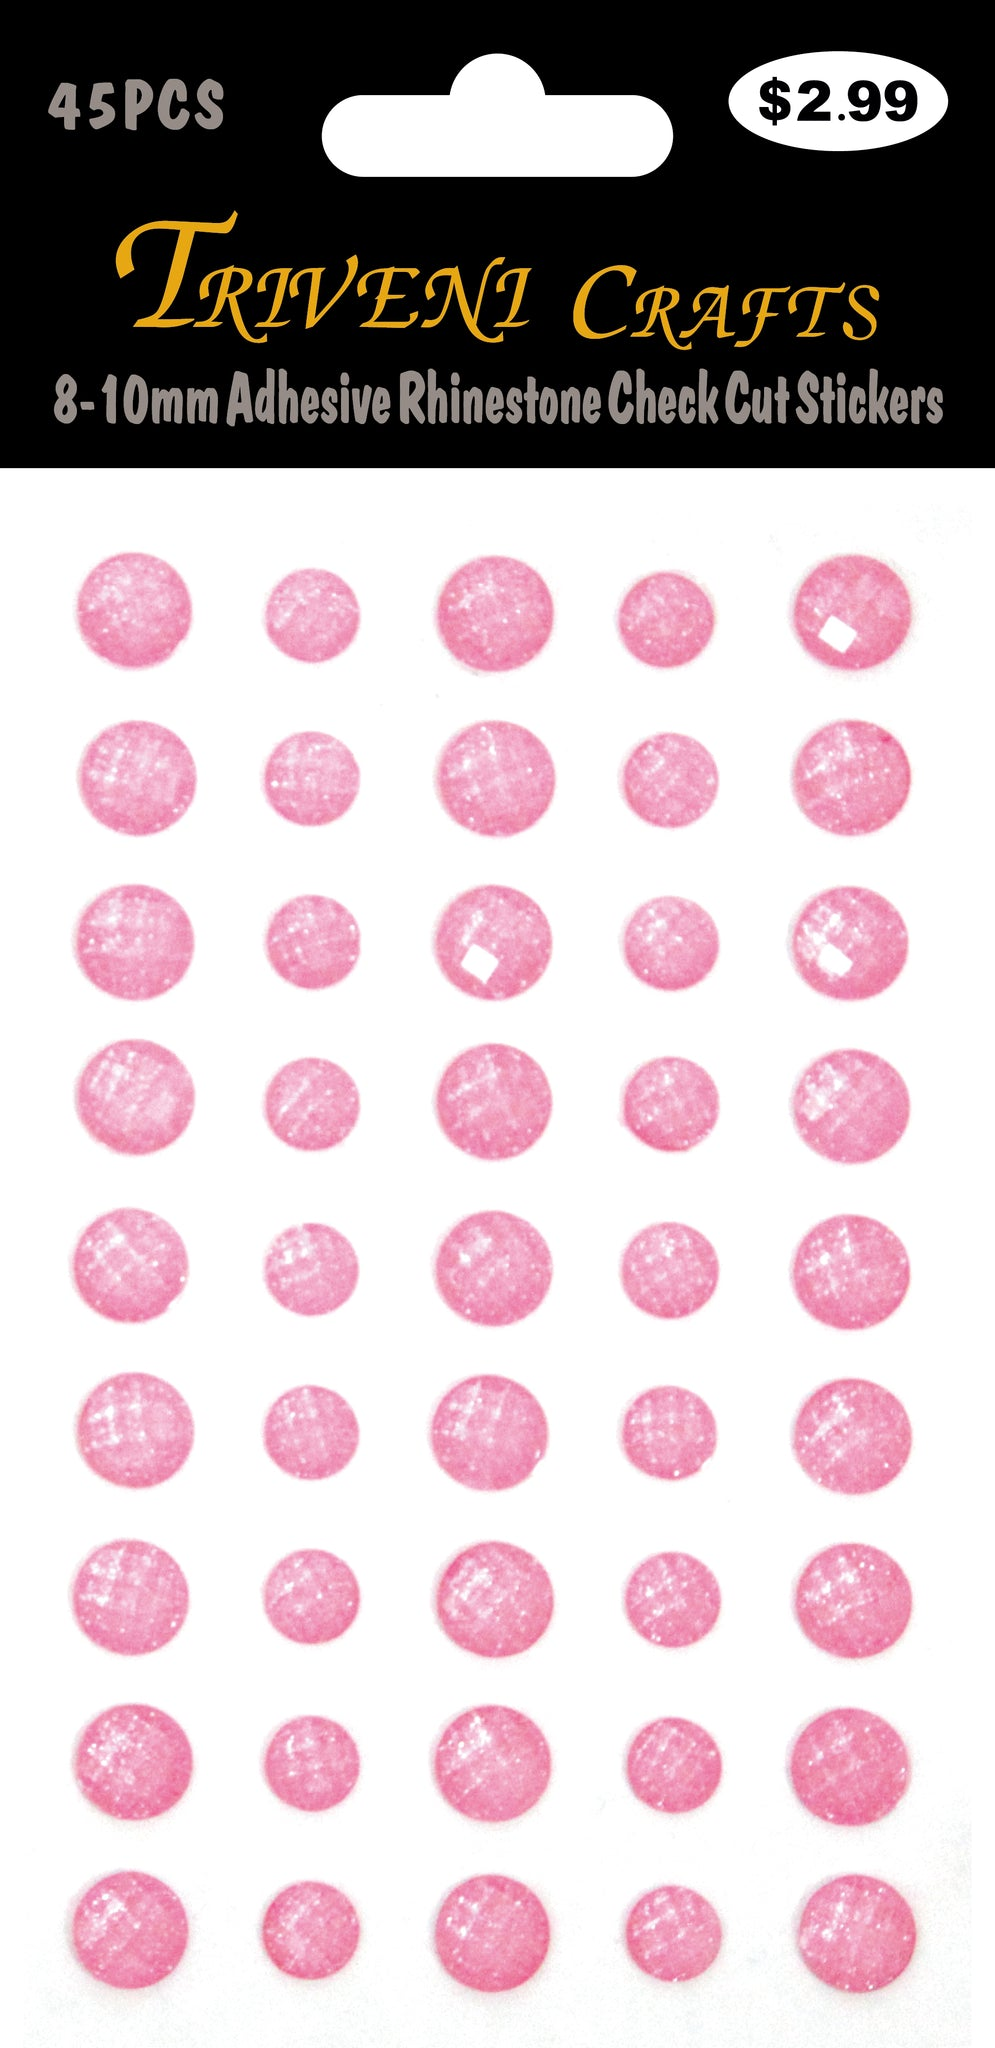 8-10mm Adhesive Rhinestone Check Cut Stickers - Pink